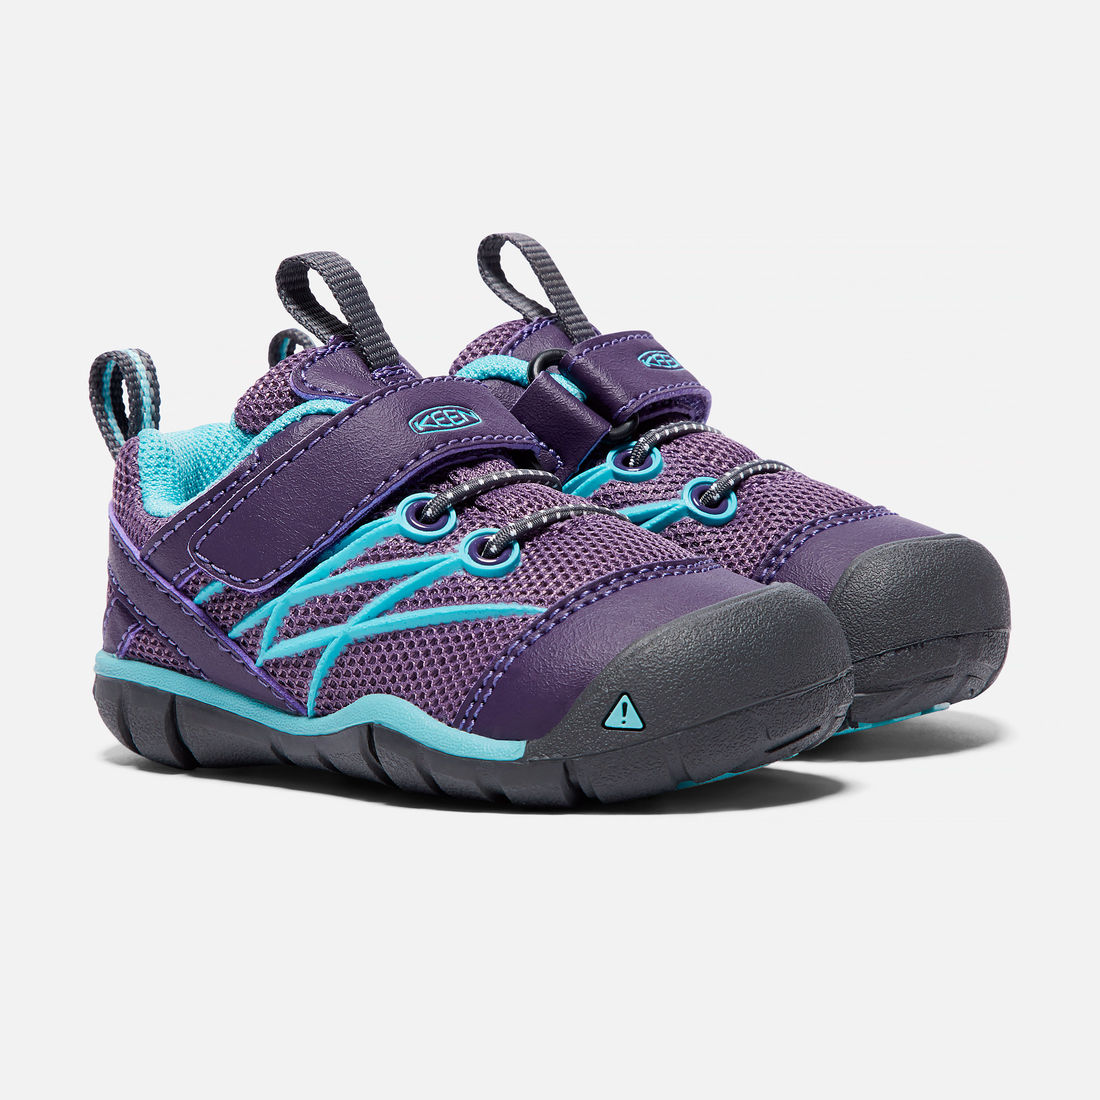 55d64657147 KEEN Chandler CNX, Montana Grape/Aqua Haze (4-7) | Kid Friendly Footwear